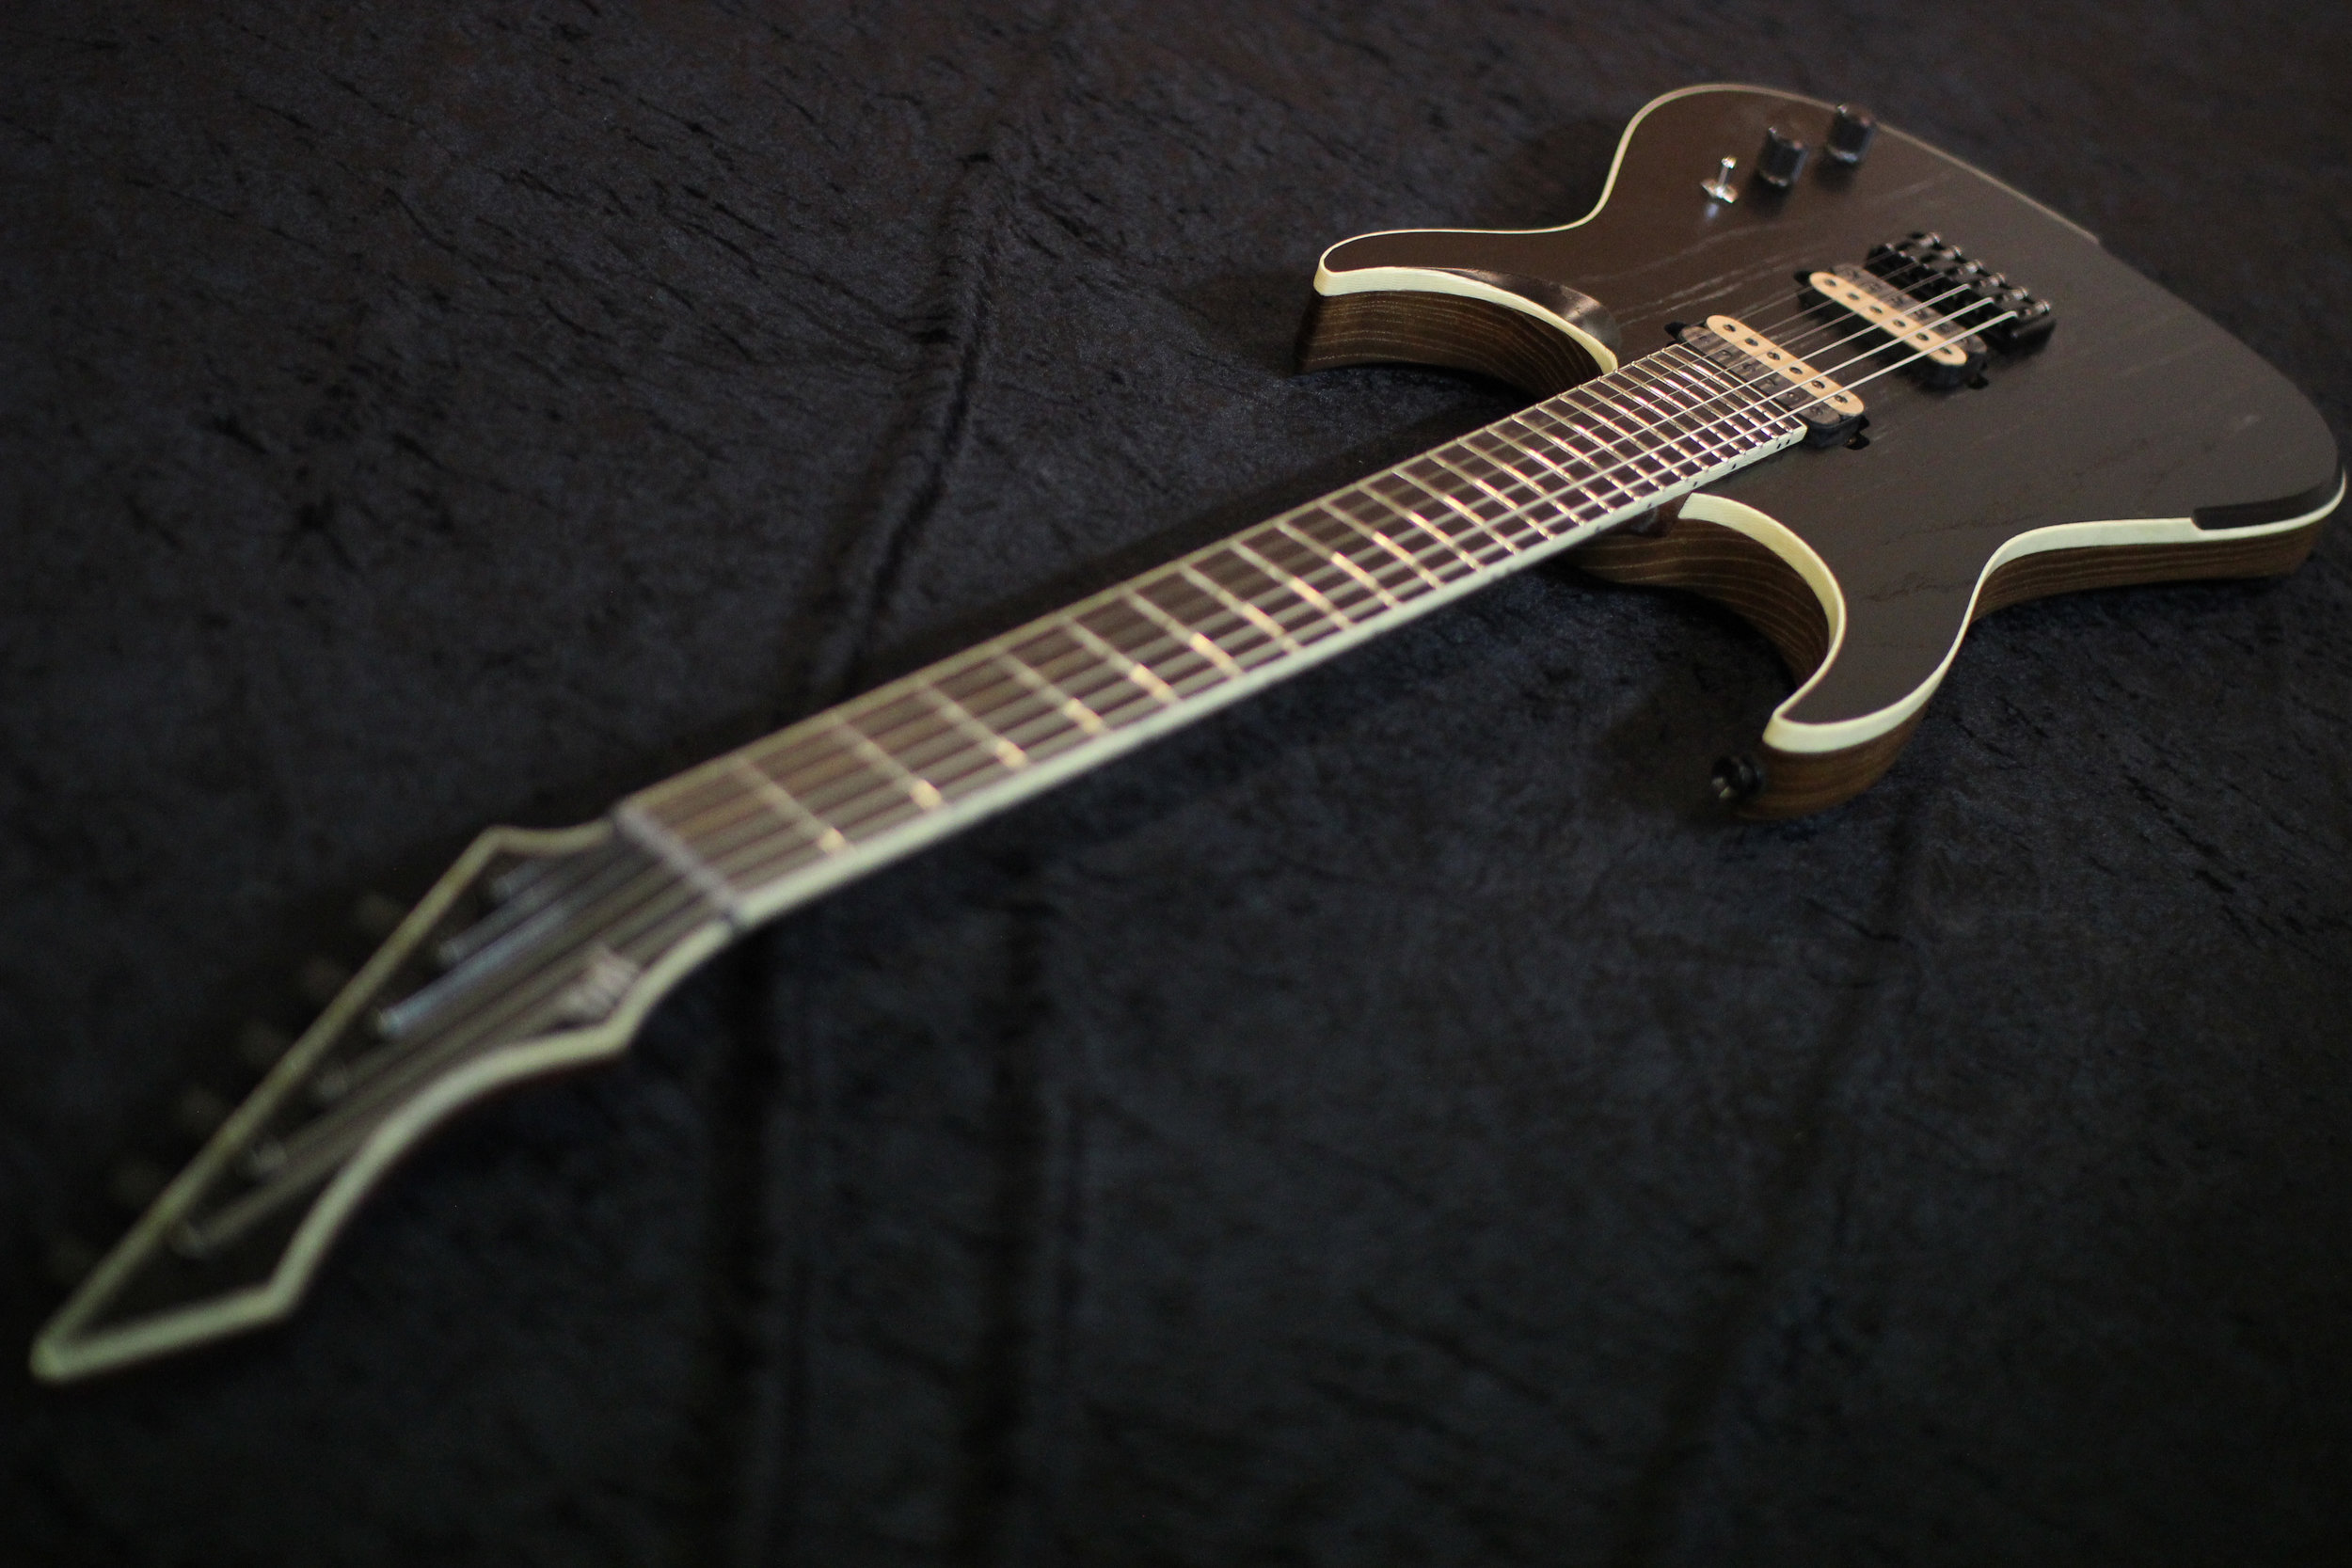 JPM - Does Thou Djent? Thou bloody well does! Stripped back and simple, the JPM series offers crushing contemporary metal tones, unparalleled playability, a choice of 6, 7 & 8-string models, a selection of Straight scales or Multi-Scales.